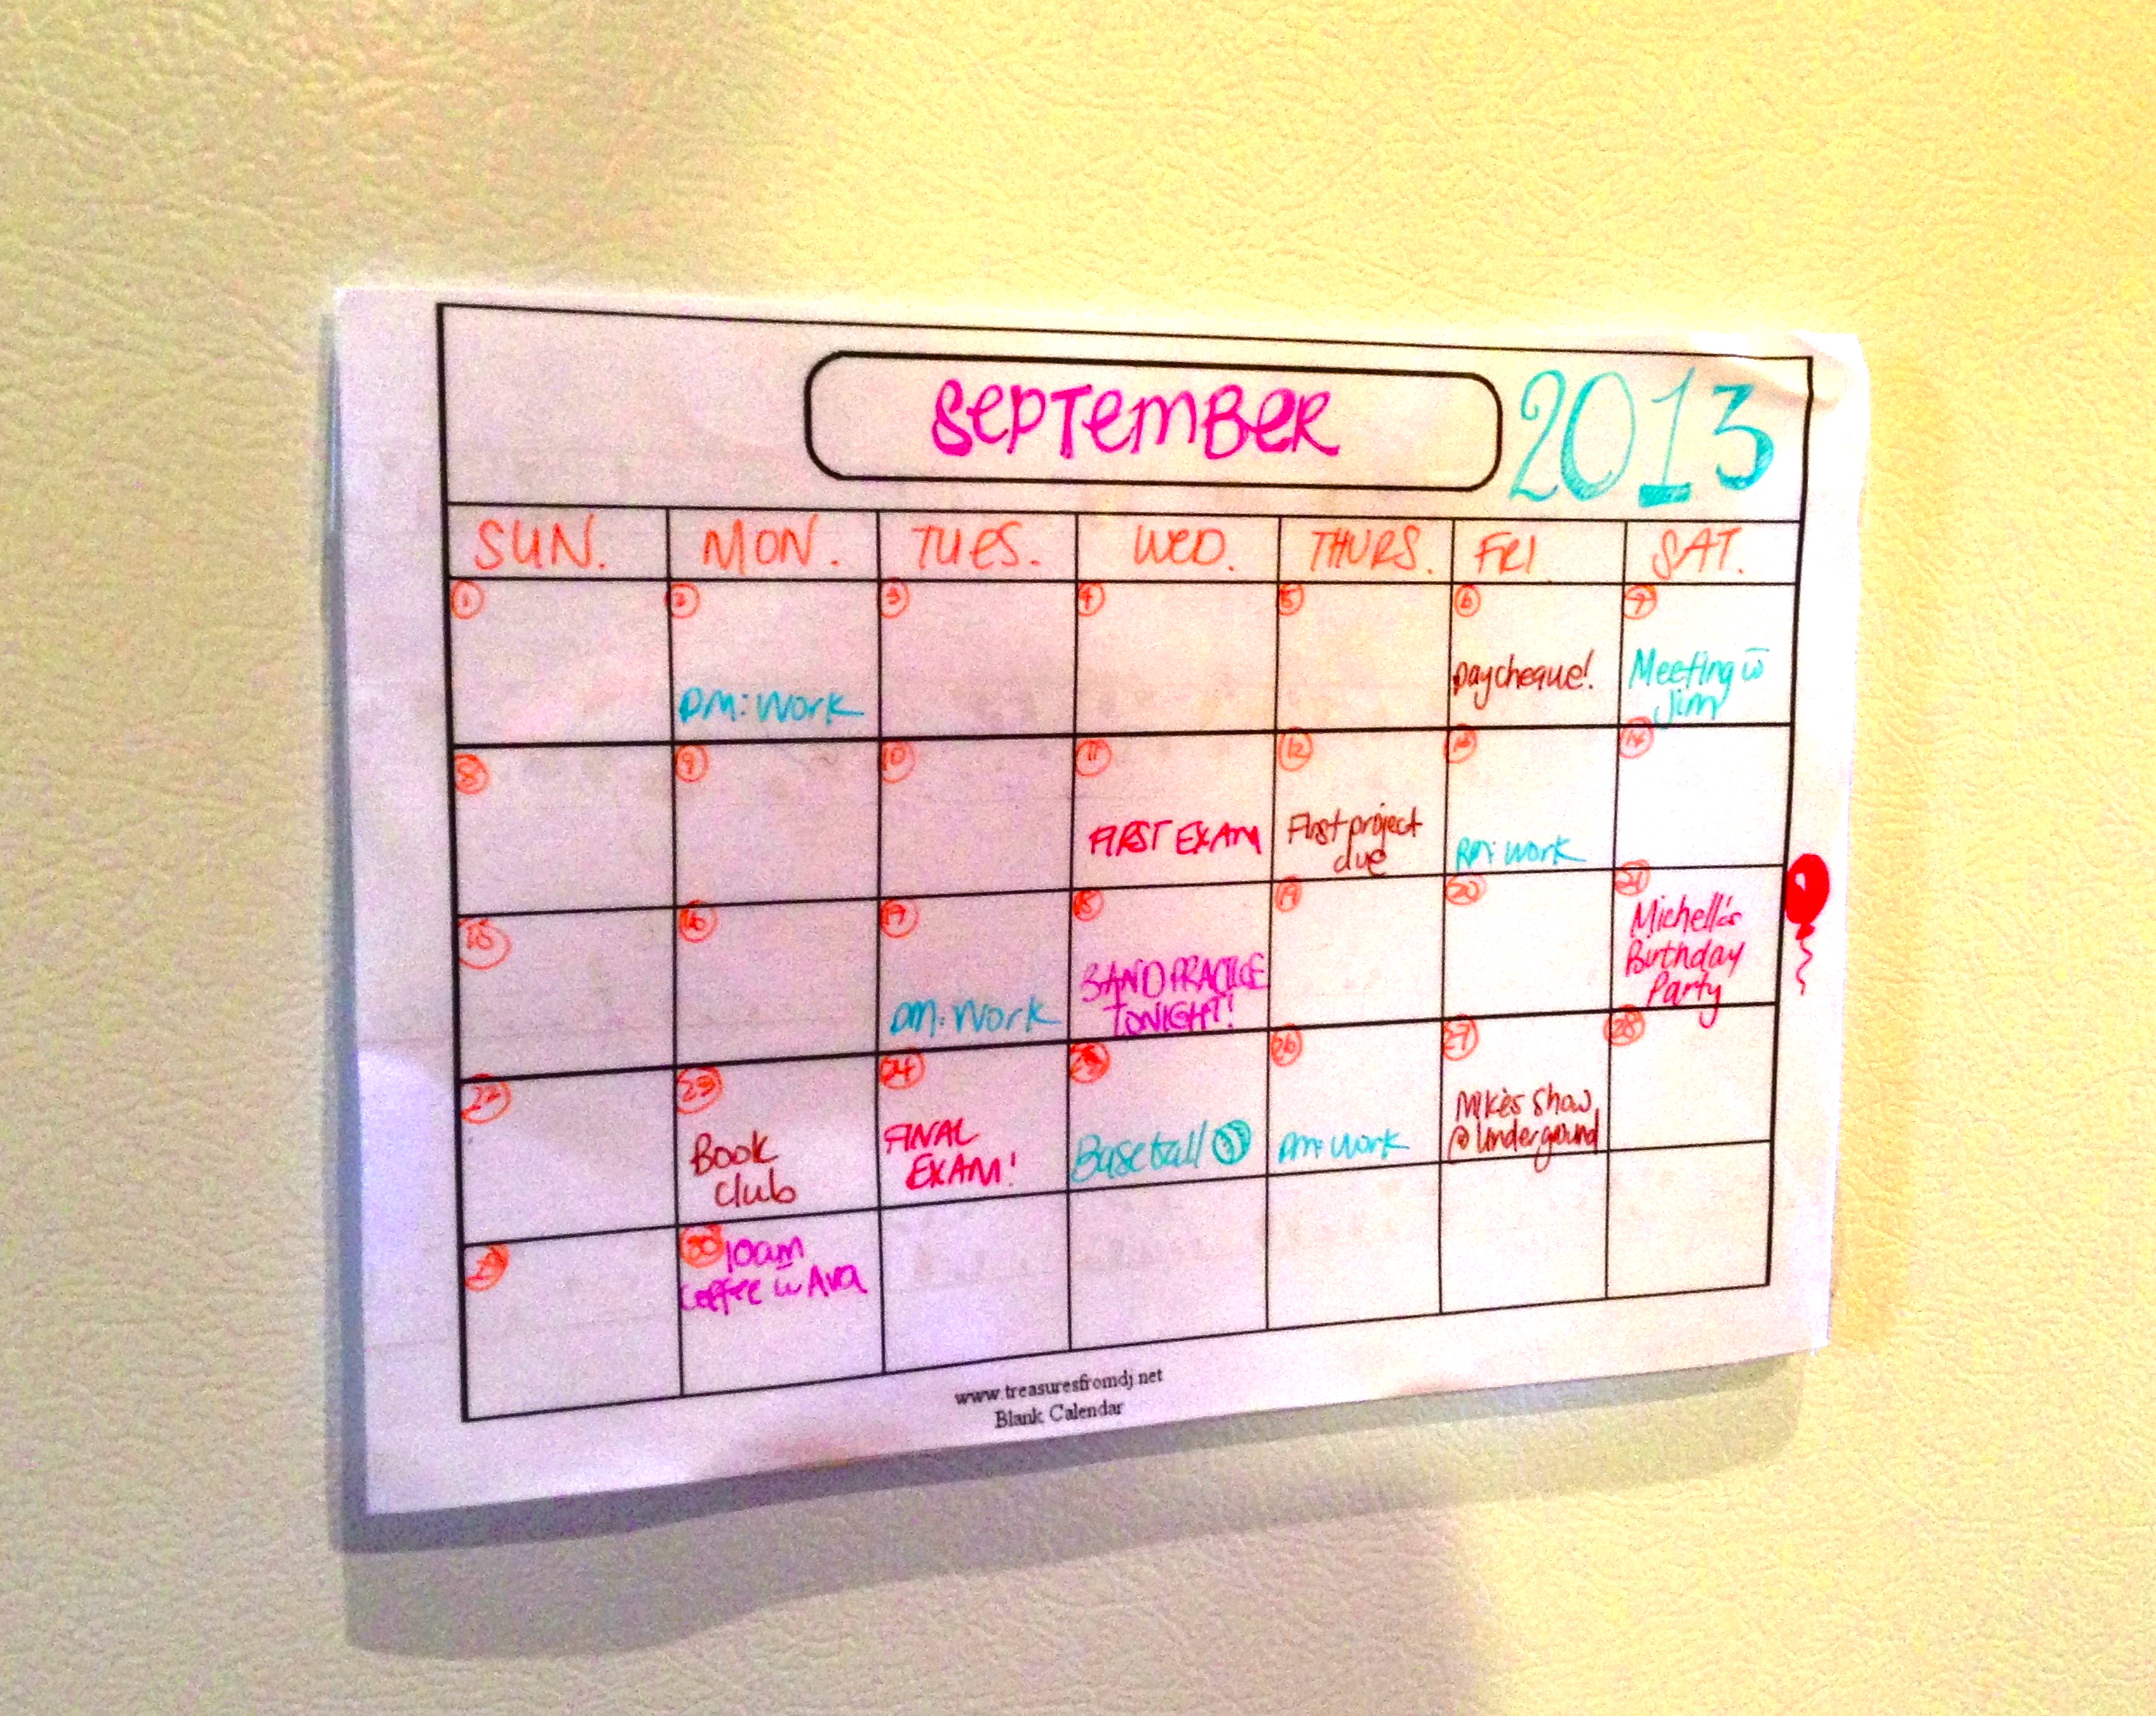 Diy Calendar For School : Diy dry erase calendar bandit tape gun